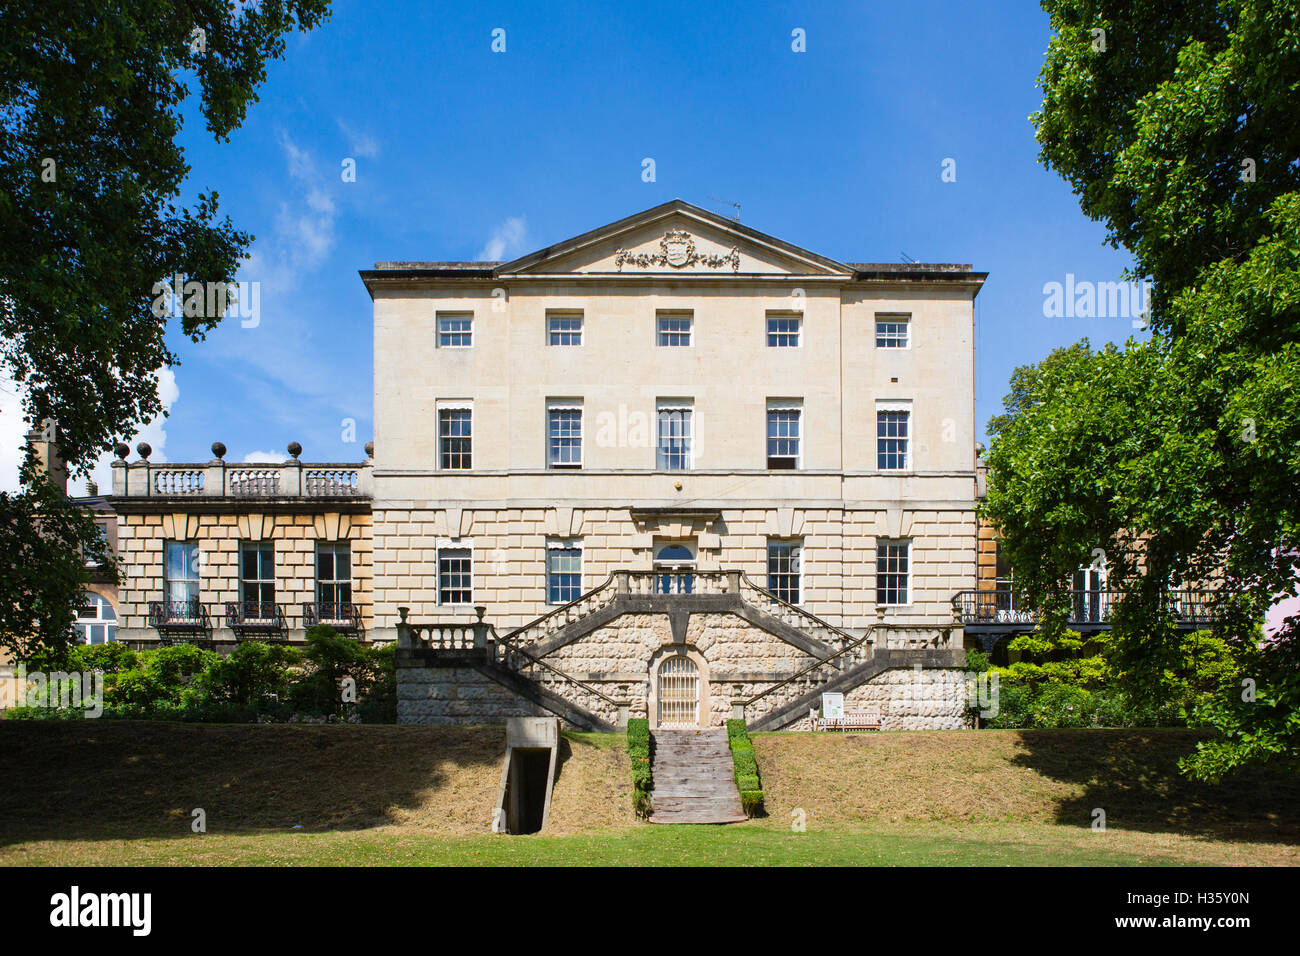 Wonderful Stock Photo   The University Of Bristol Gardens And Buildings In The Centre  Of The City